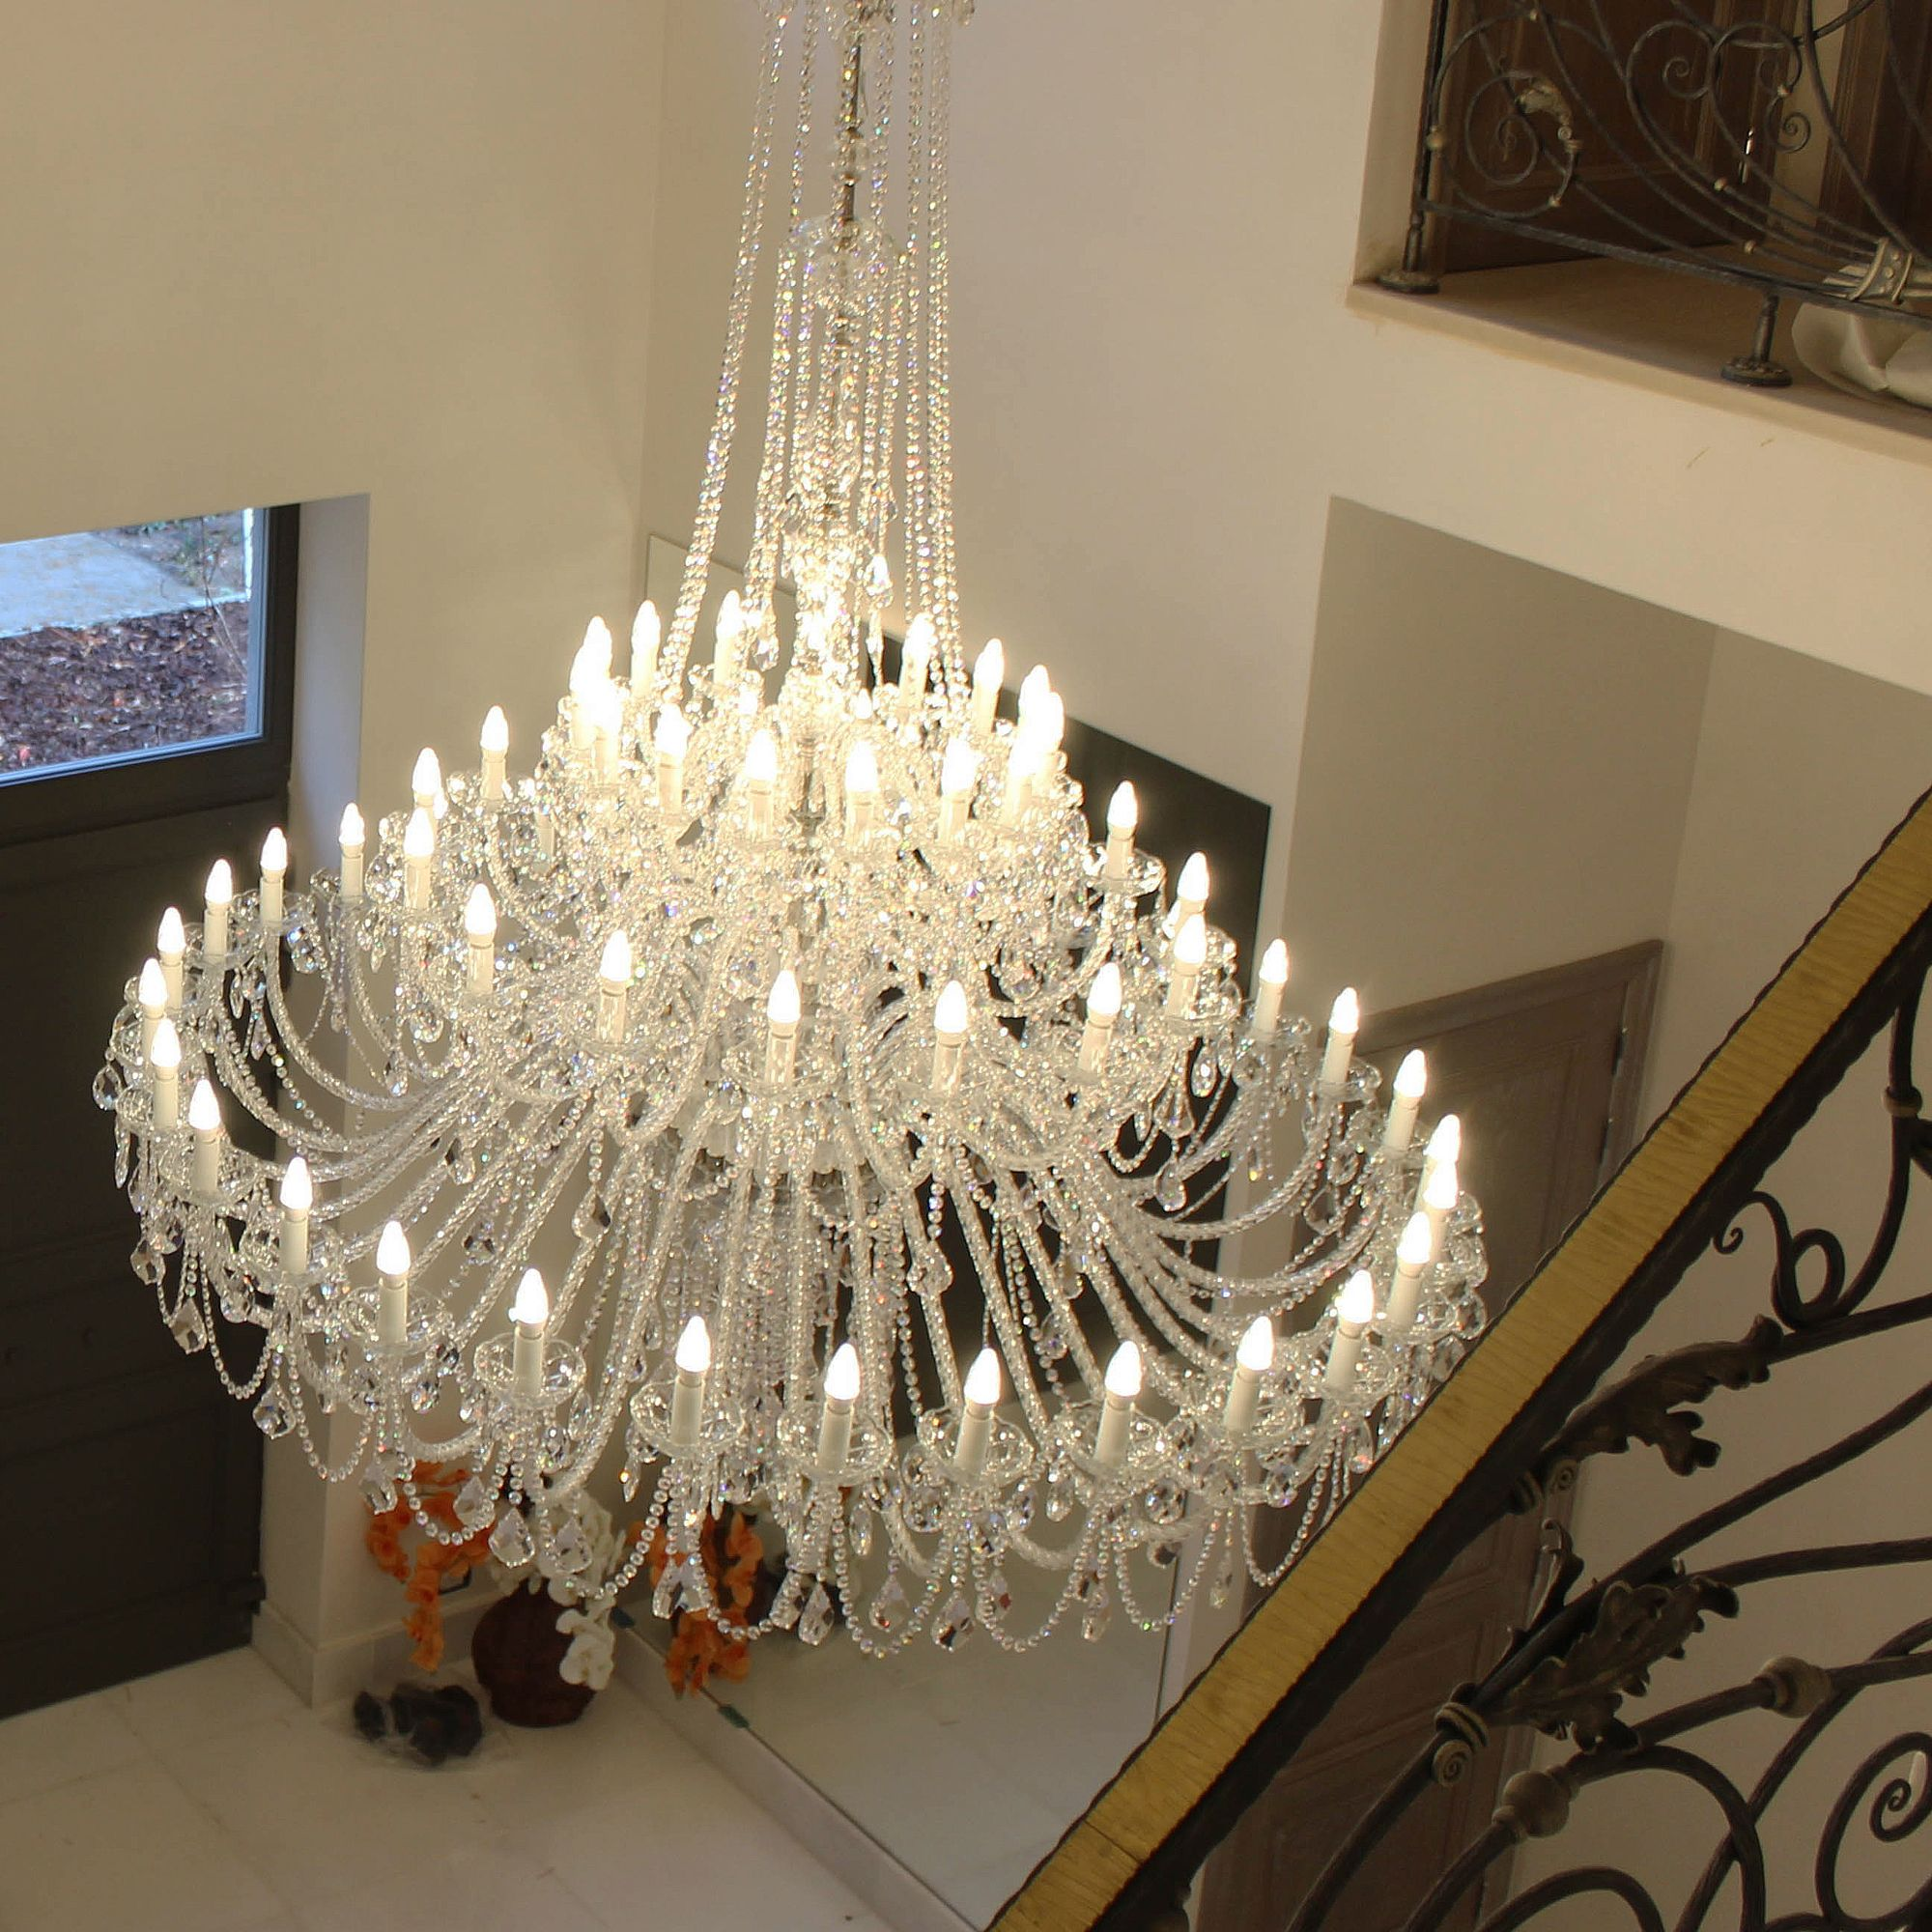 We Have Recently Installed Our Traditional Crystal Chandeliers